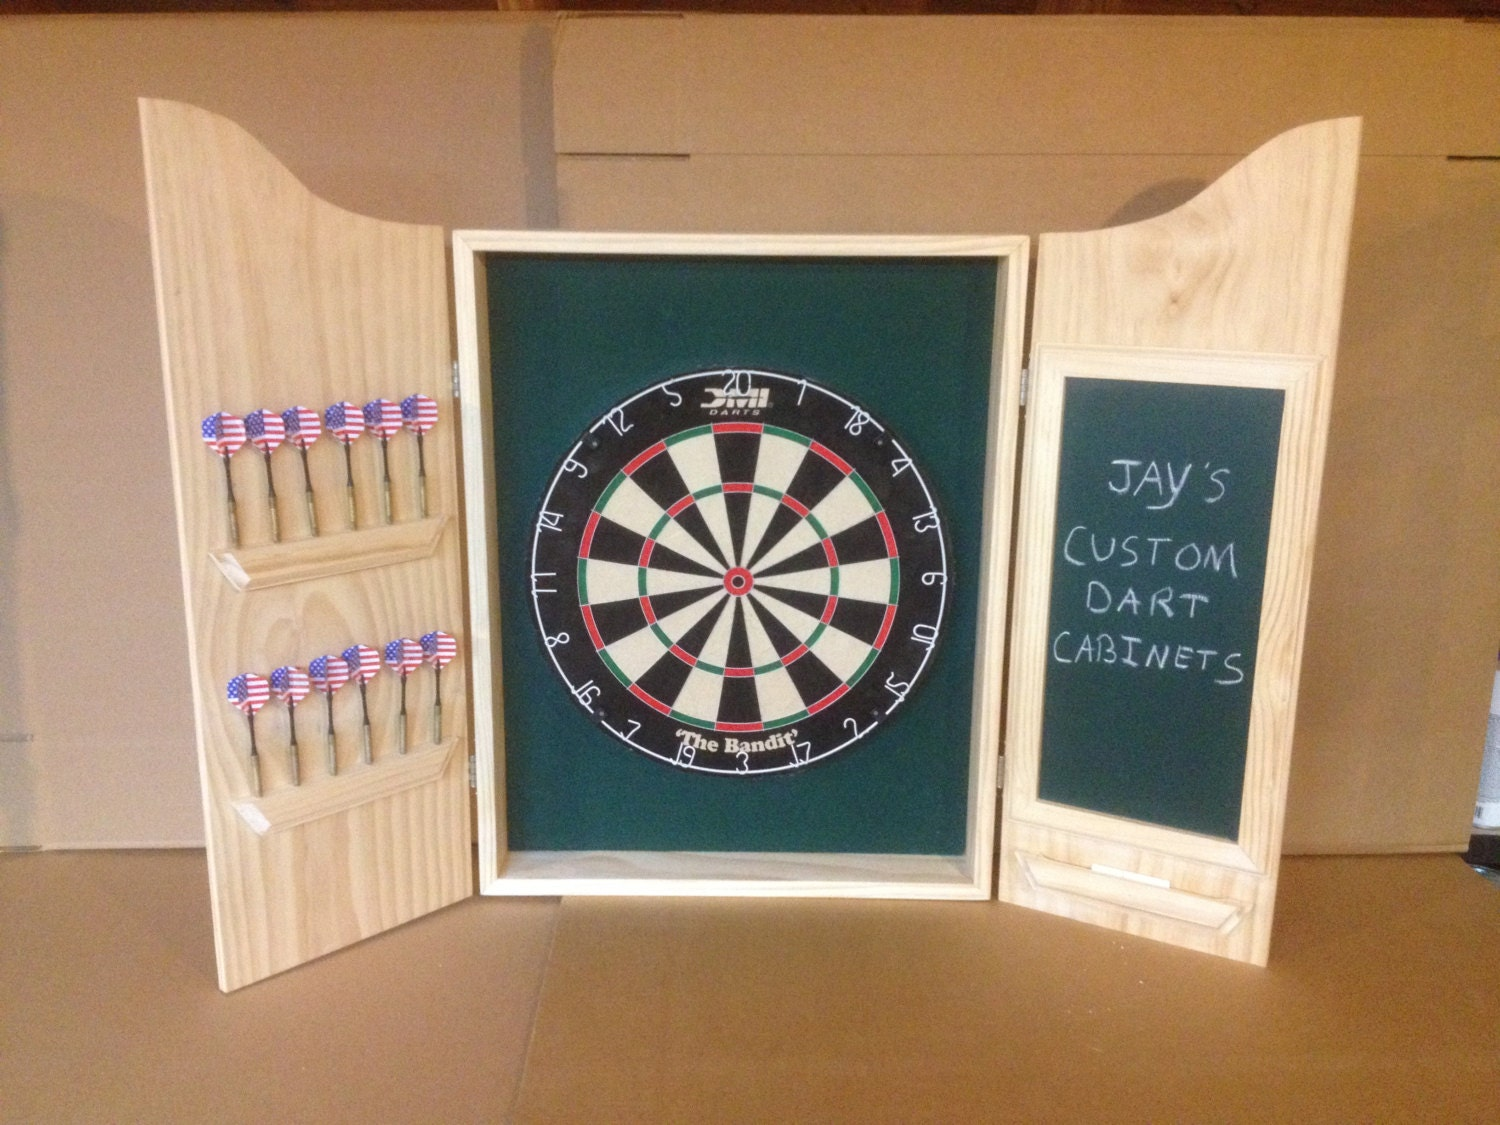 ... Cabi Plans Plans Free Download. on dartboard cabinet plans free